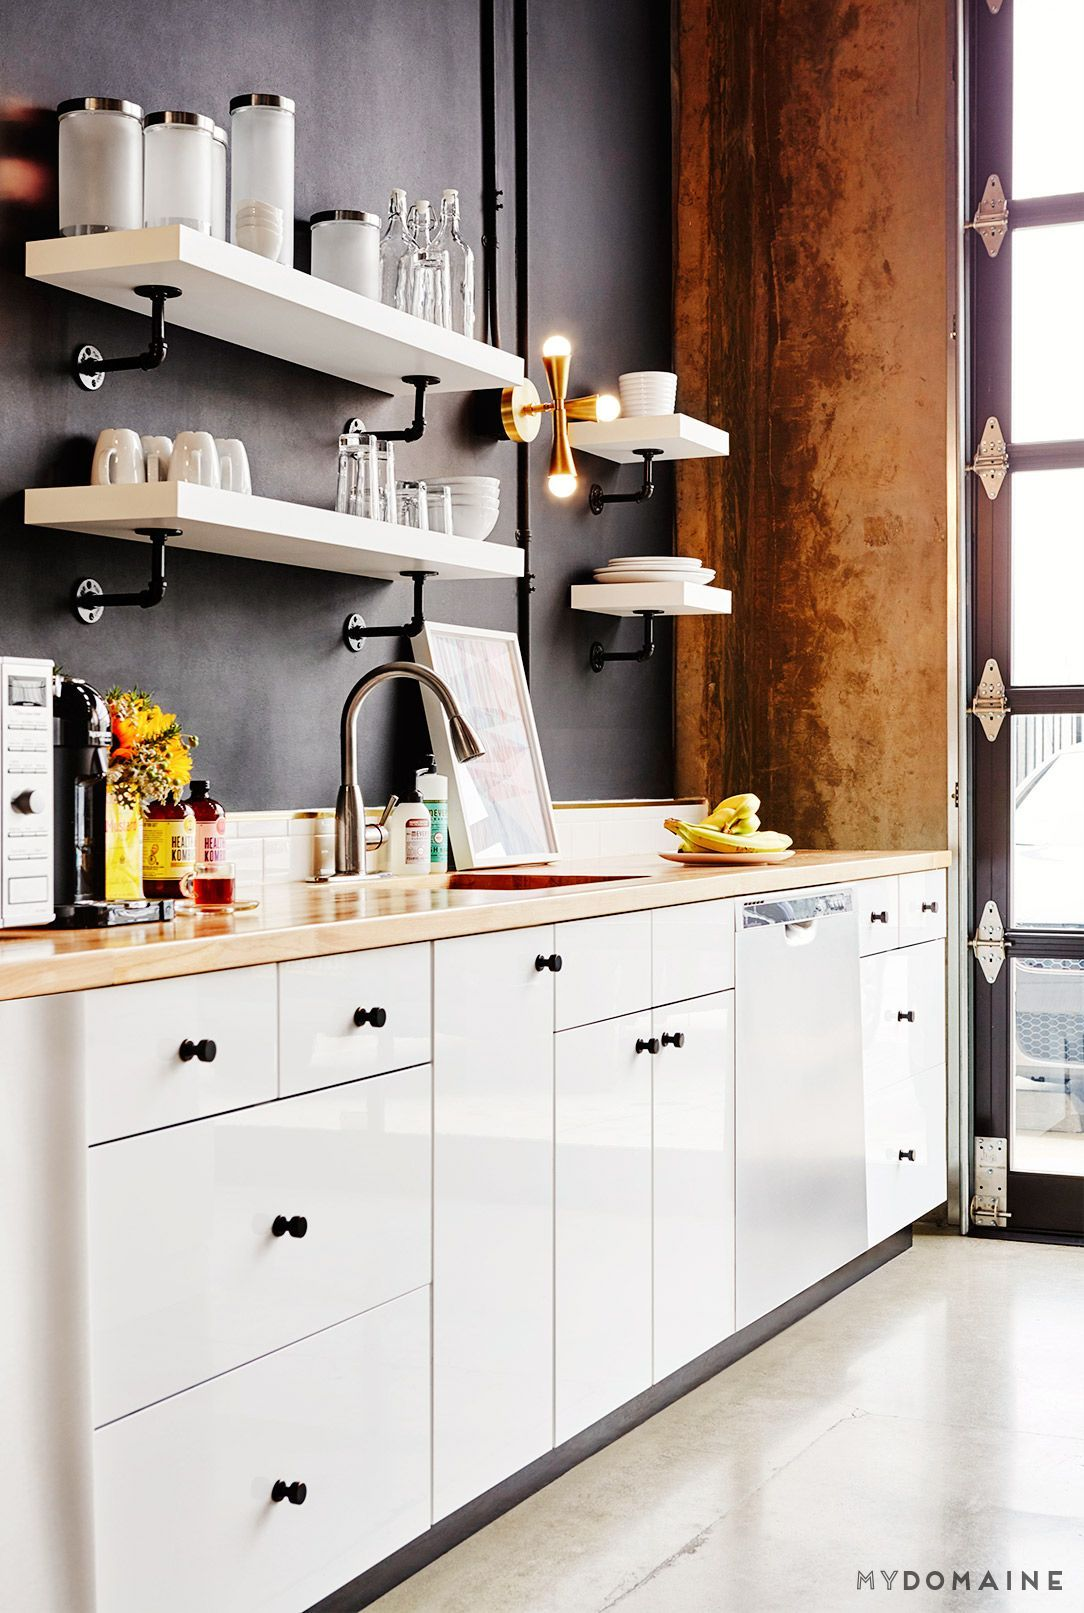 office countertops. Office Kitchen With Black Walls, White Shelves, Cabinets, Wood Countertops, And Countertops O